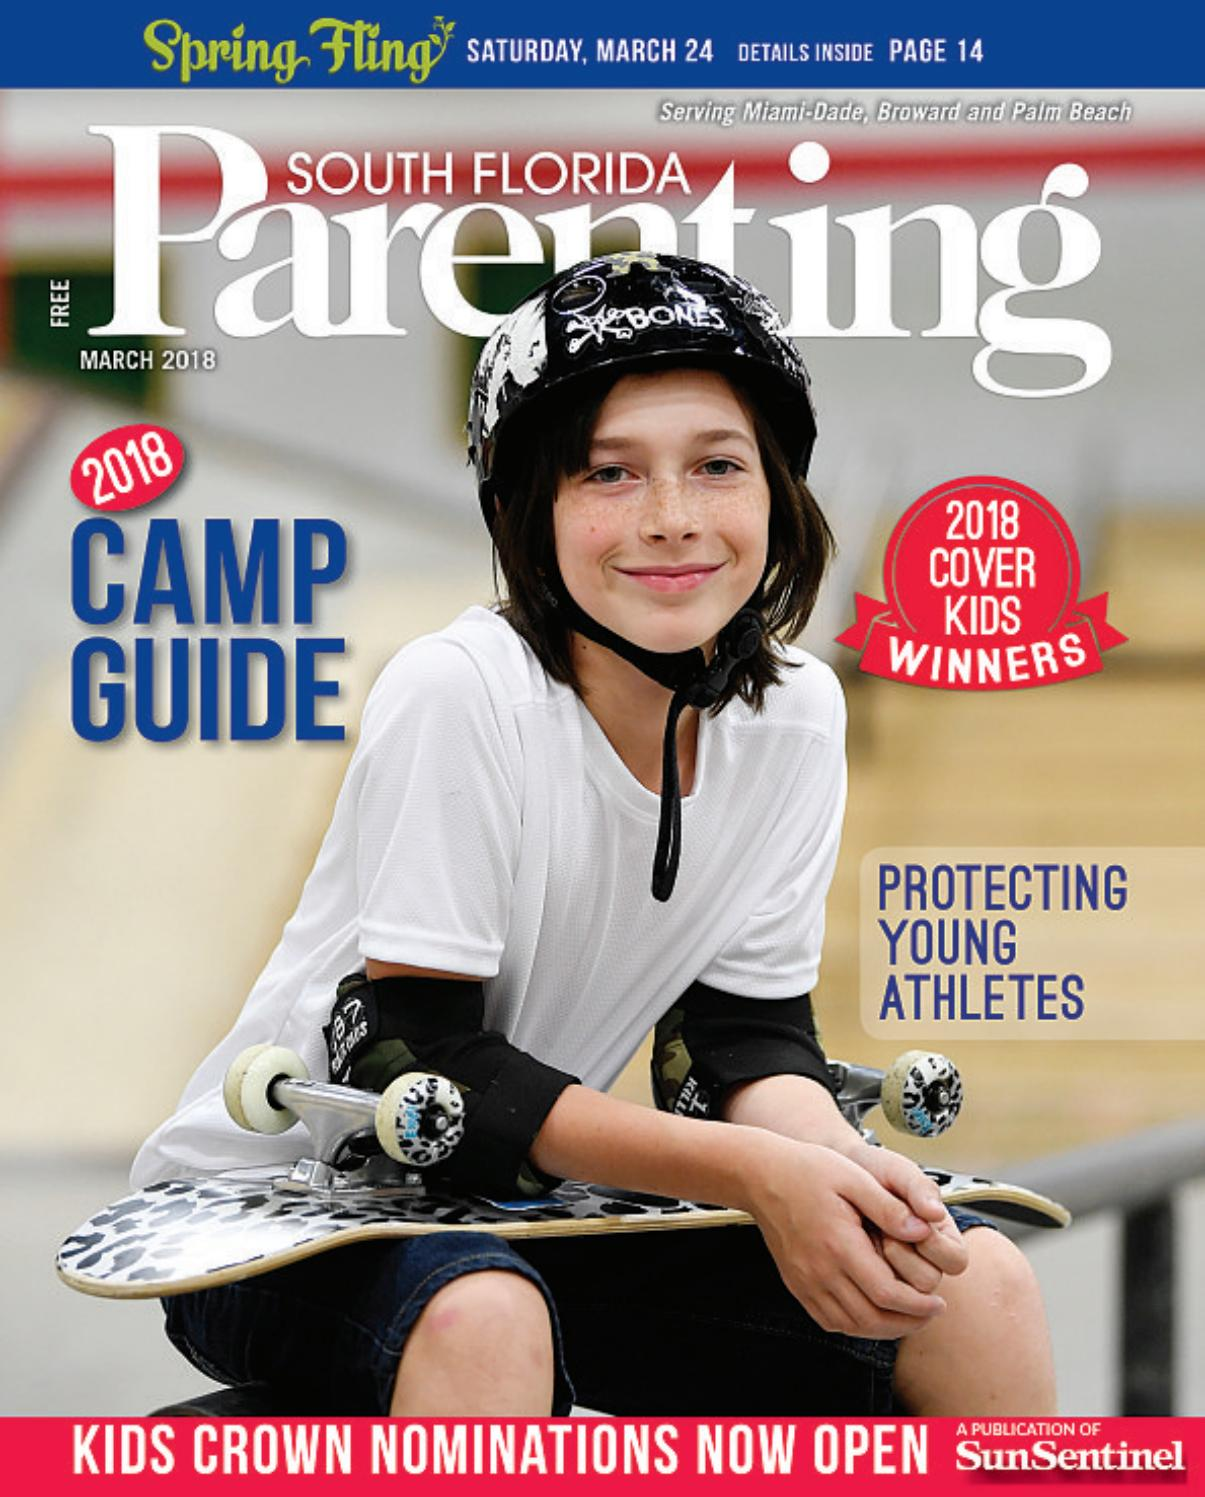 fb705dde7e South Florida Parenting March 2018 issue by Forum Publishing Group ...